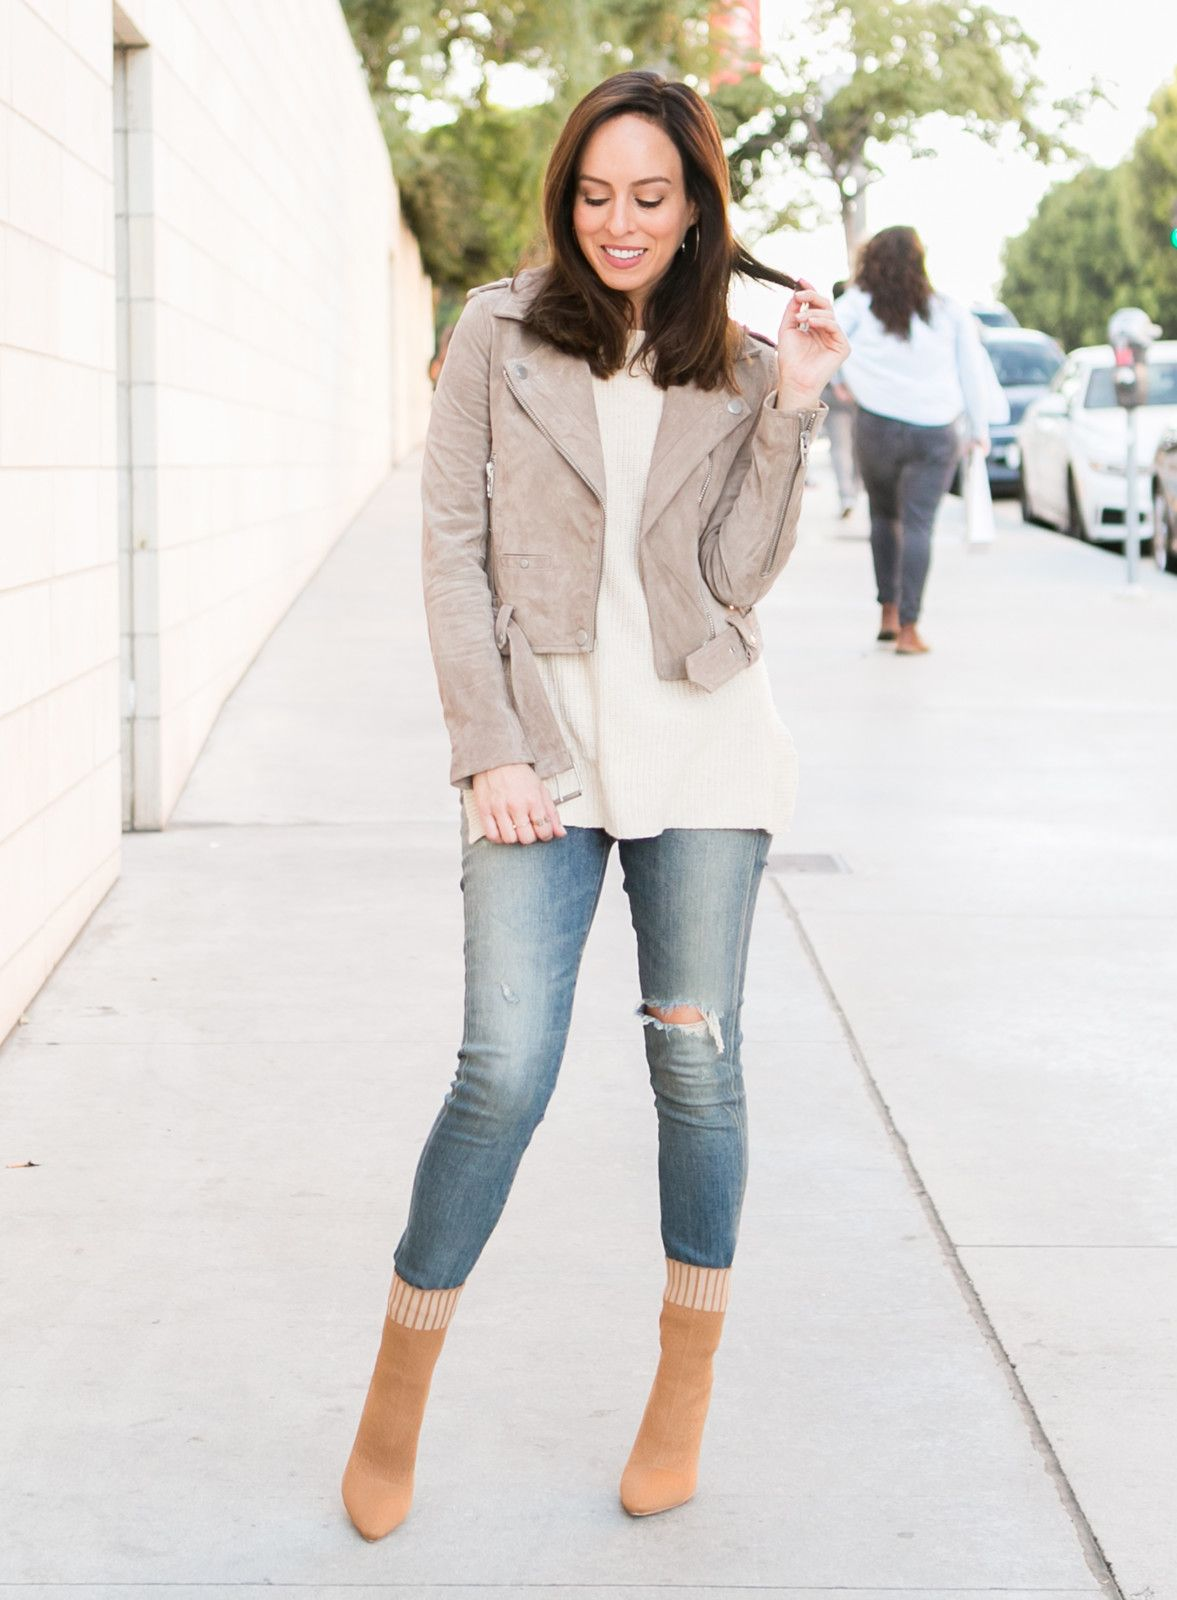 How To Wear Sock Boots - Six Unique Ways   Fall Winter Inspiration ... b56f1b4cce